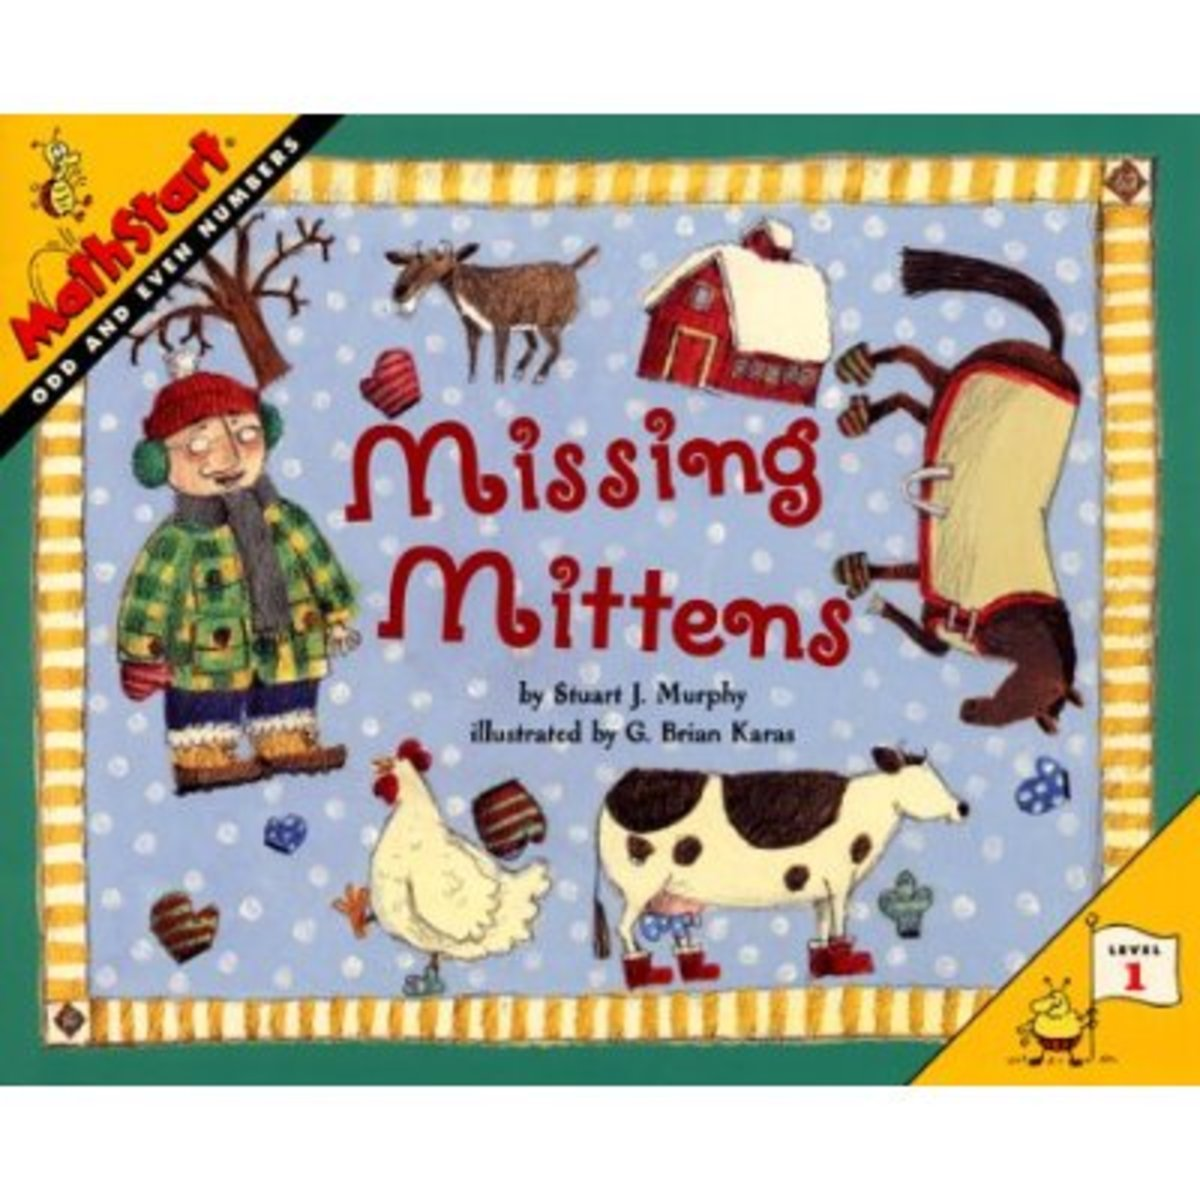 Add this math book to your mitten mayhem. Funny farm animals lose their mittens too. This book teaches the concept of odd and even numbers.